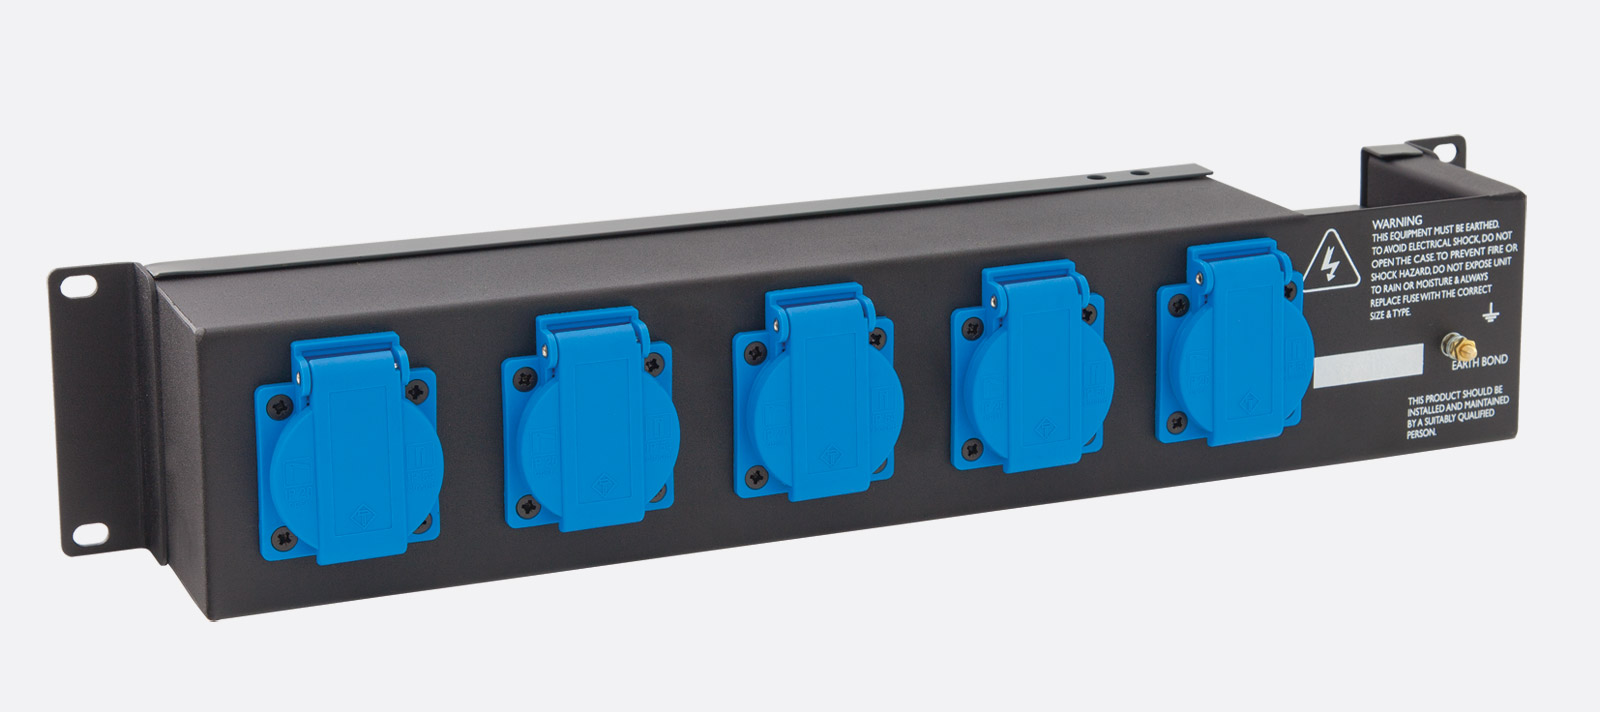 Emo C602s Power Distribution Panel Pr Series Inlet Boxes With Built In Circuit Breaker